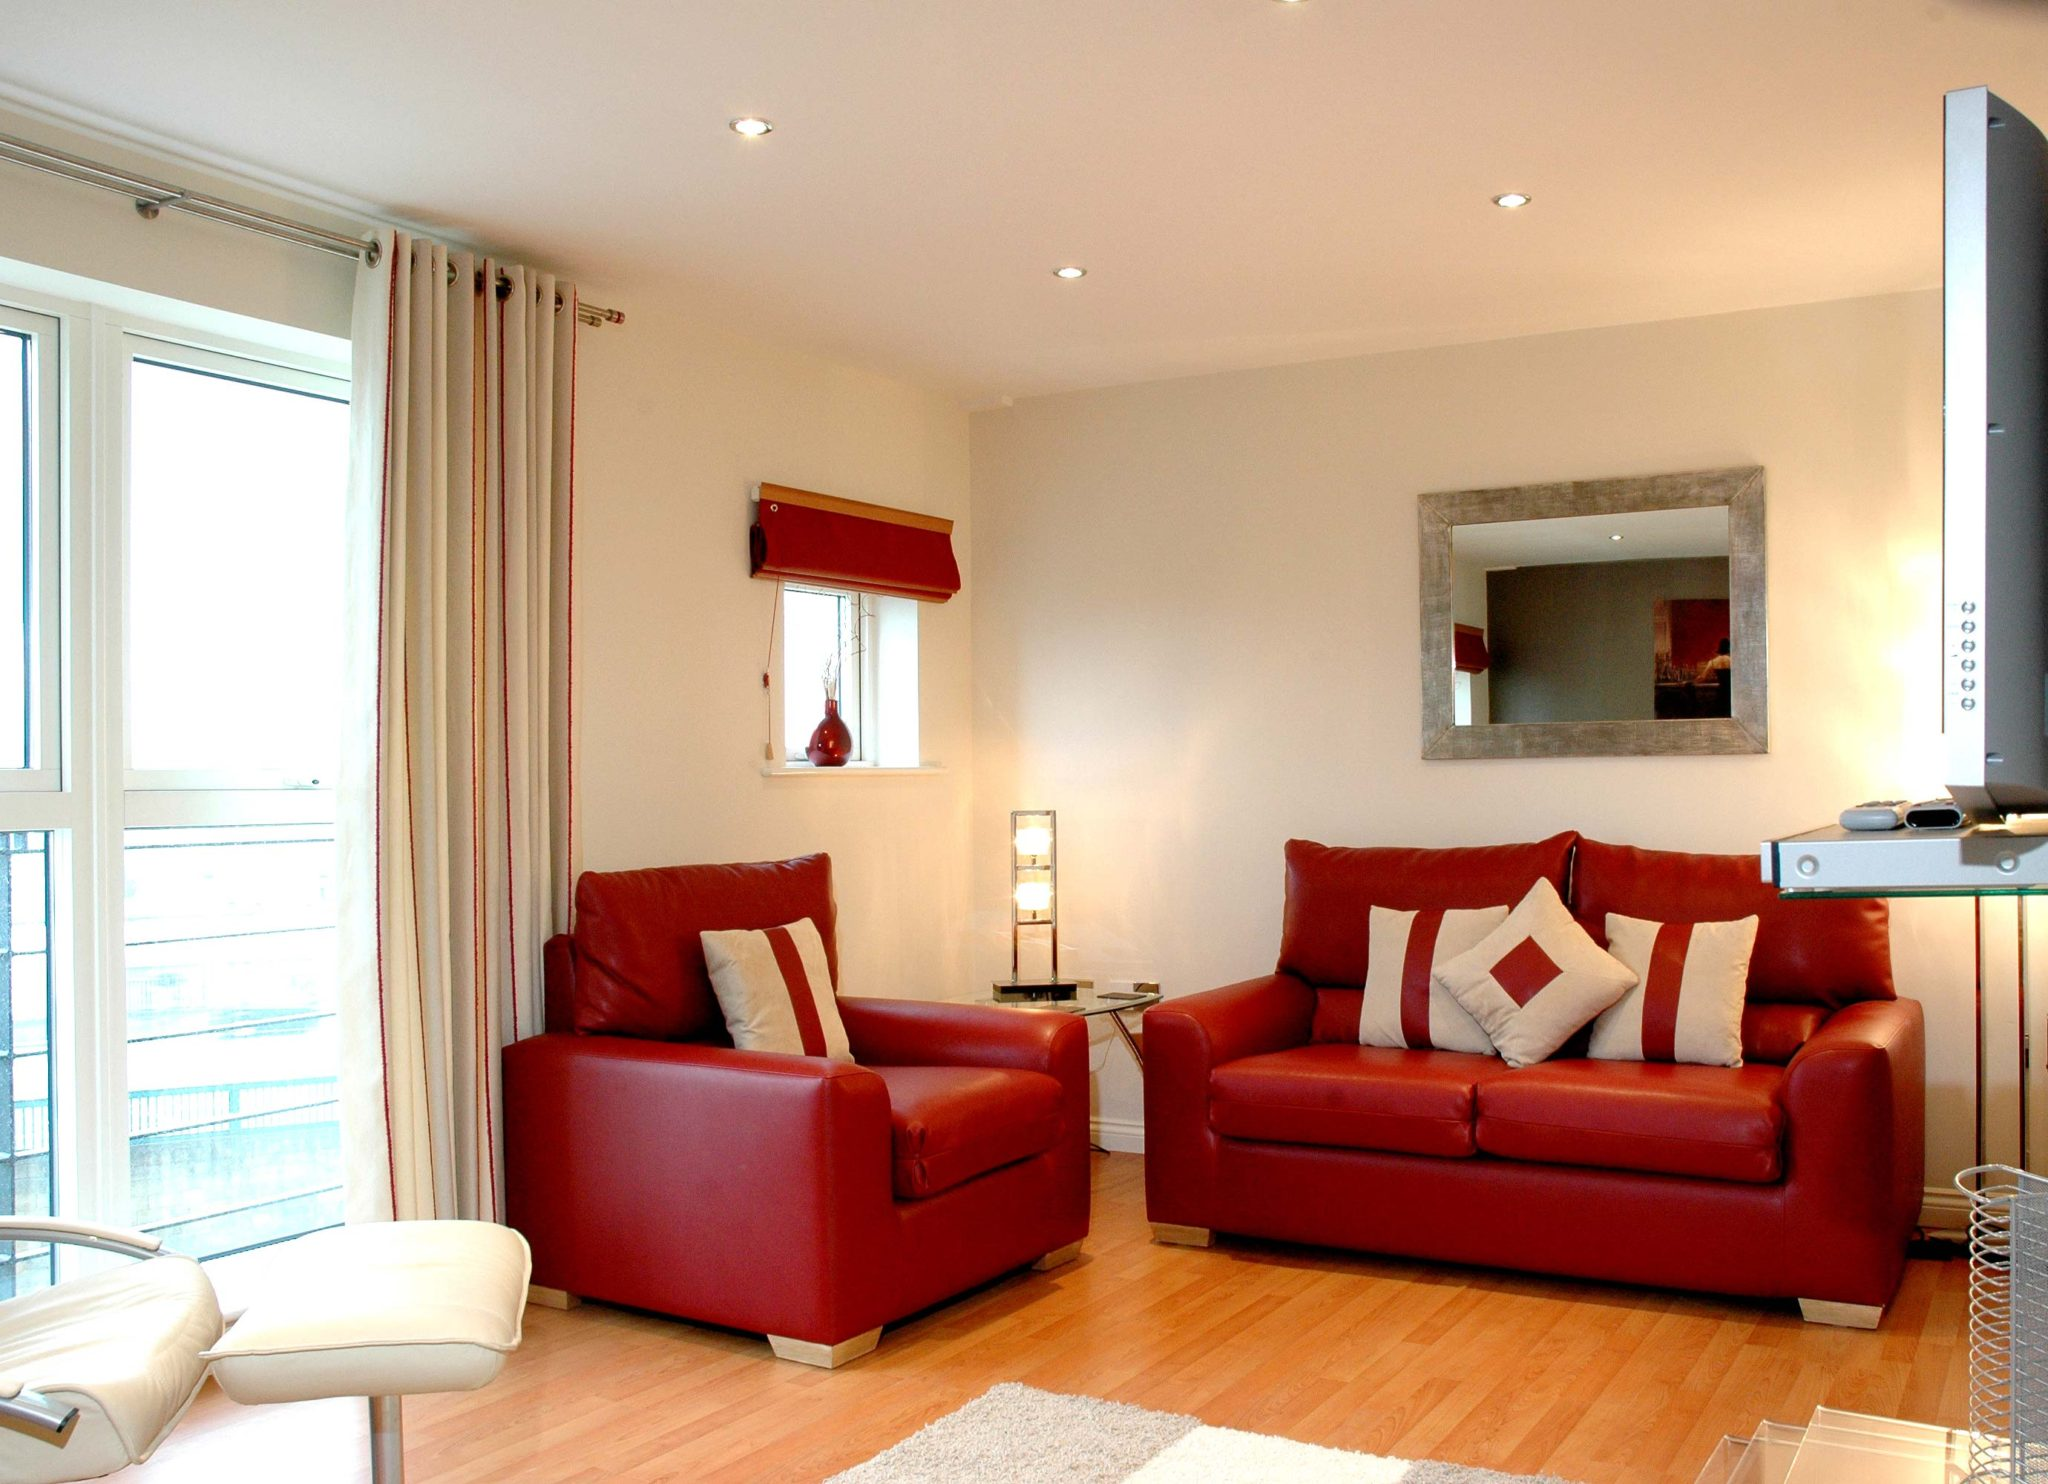 Book-Newcastle-Serviced-Accommodation-today-at-Low-Cost!-Curzon-Place-Apartments-offer-modern-Short-Lets-in-North-East-England!-Free-WIFI-&-Parking!-Urban-Stay